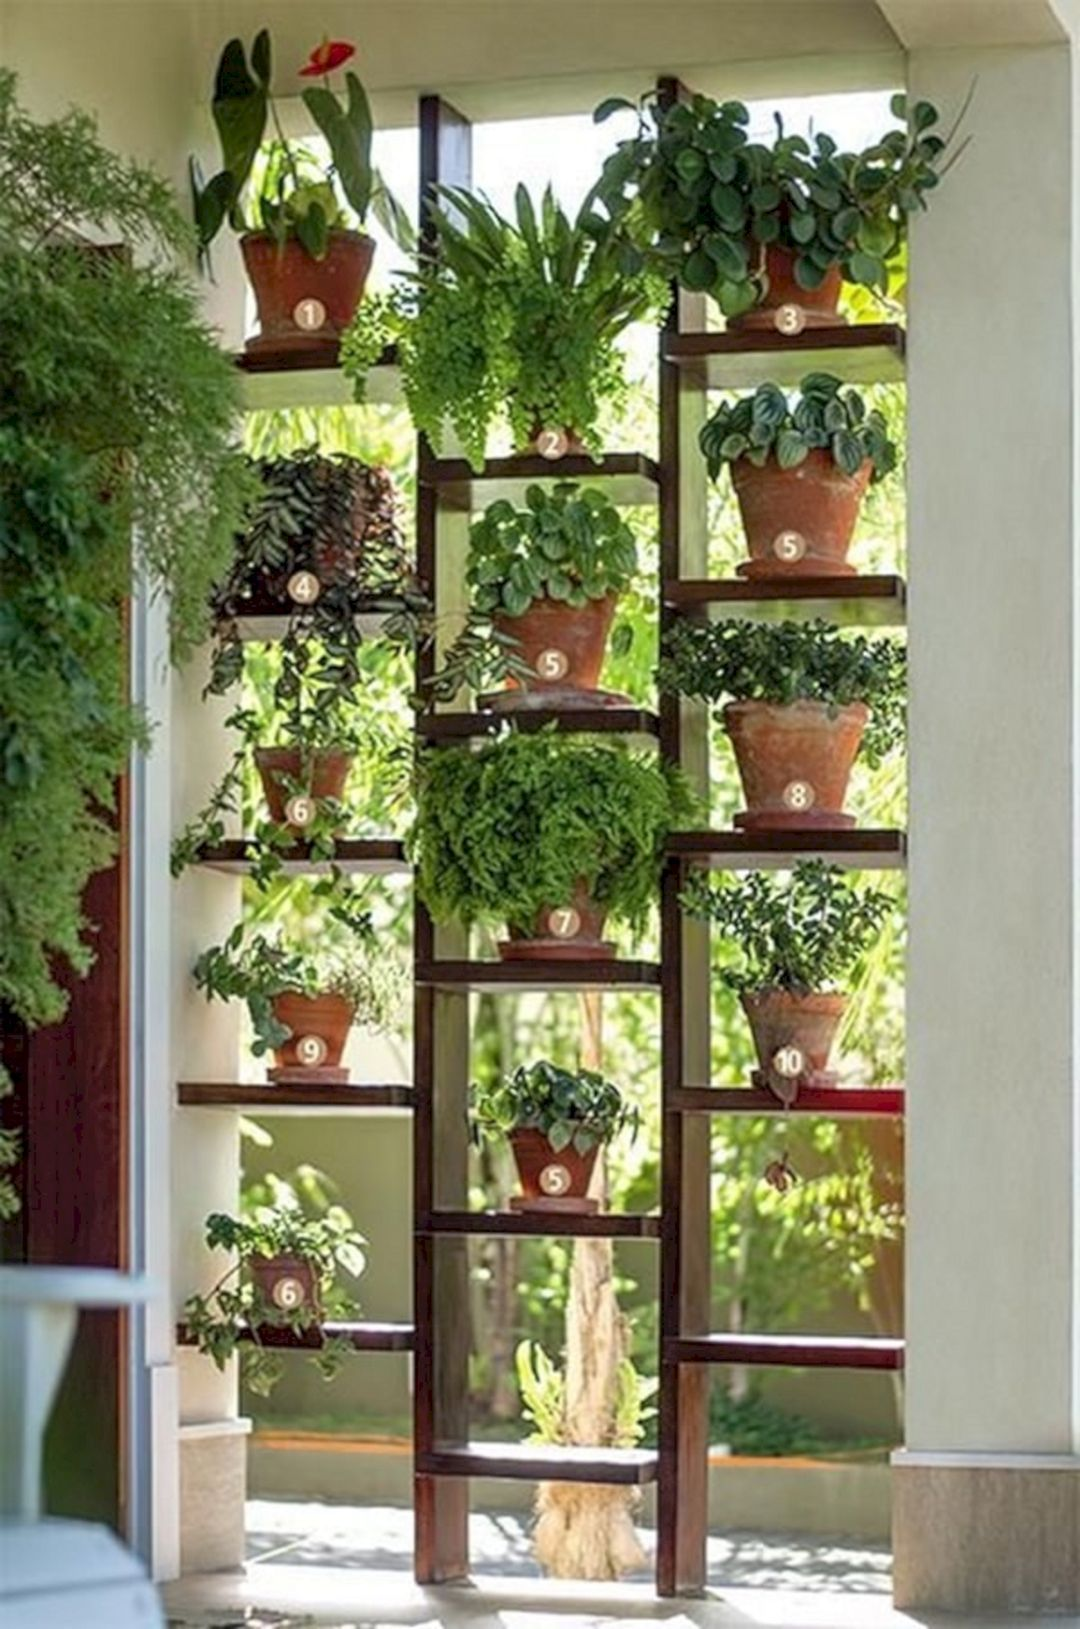 Beautiful Minimalist Vertical Garden For Your Home Backyard goodsgn